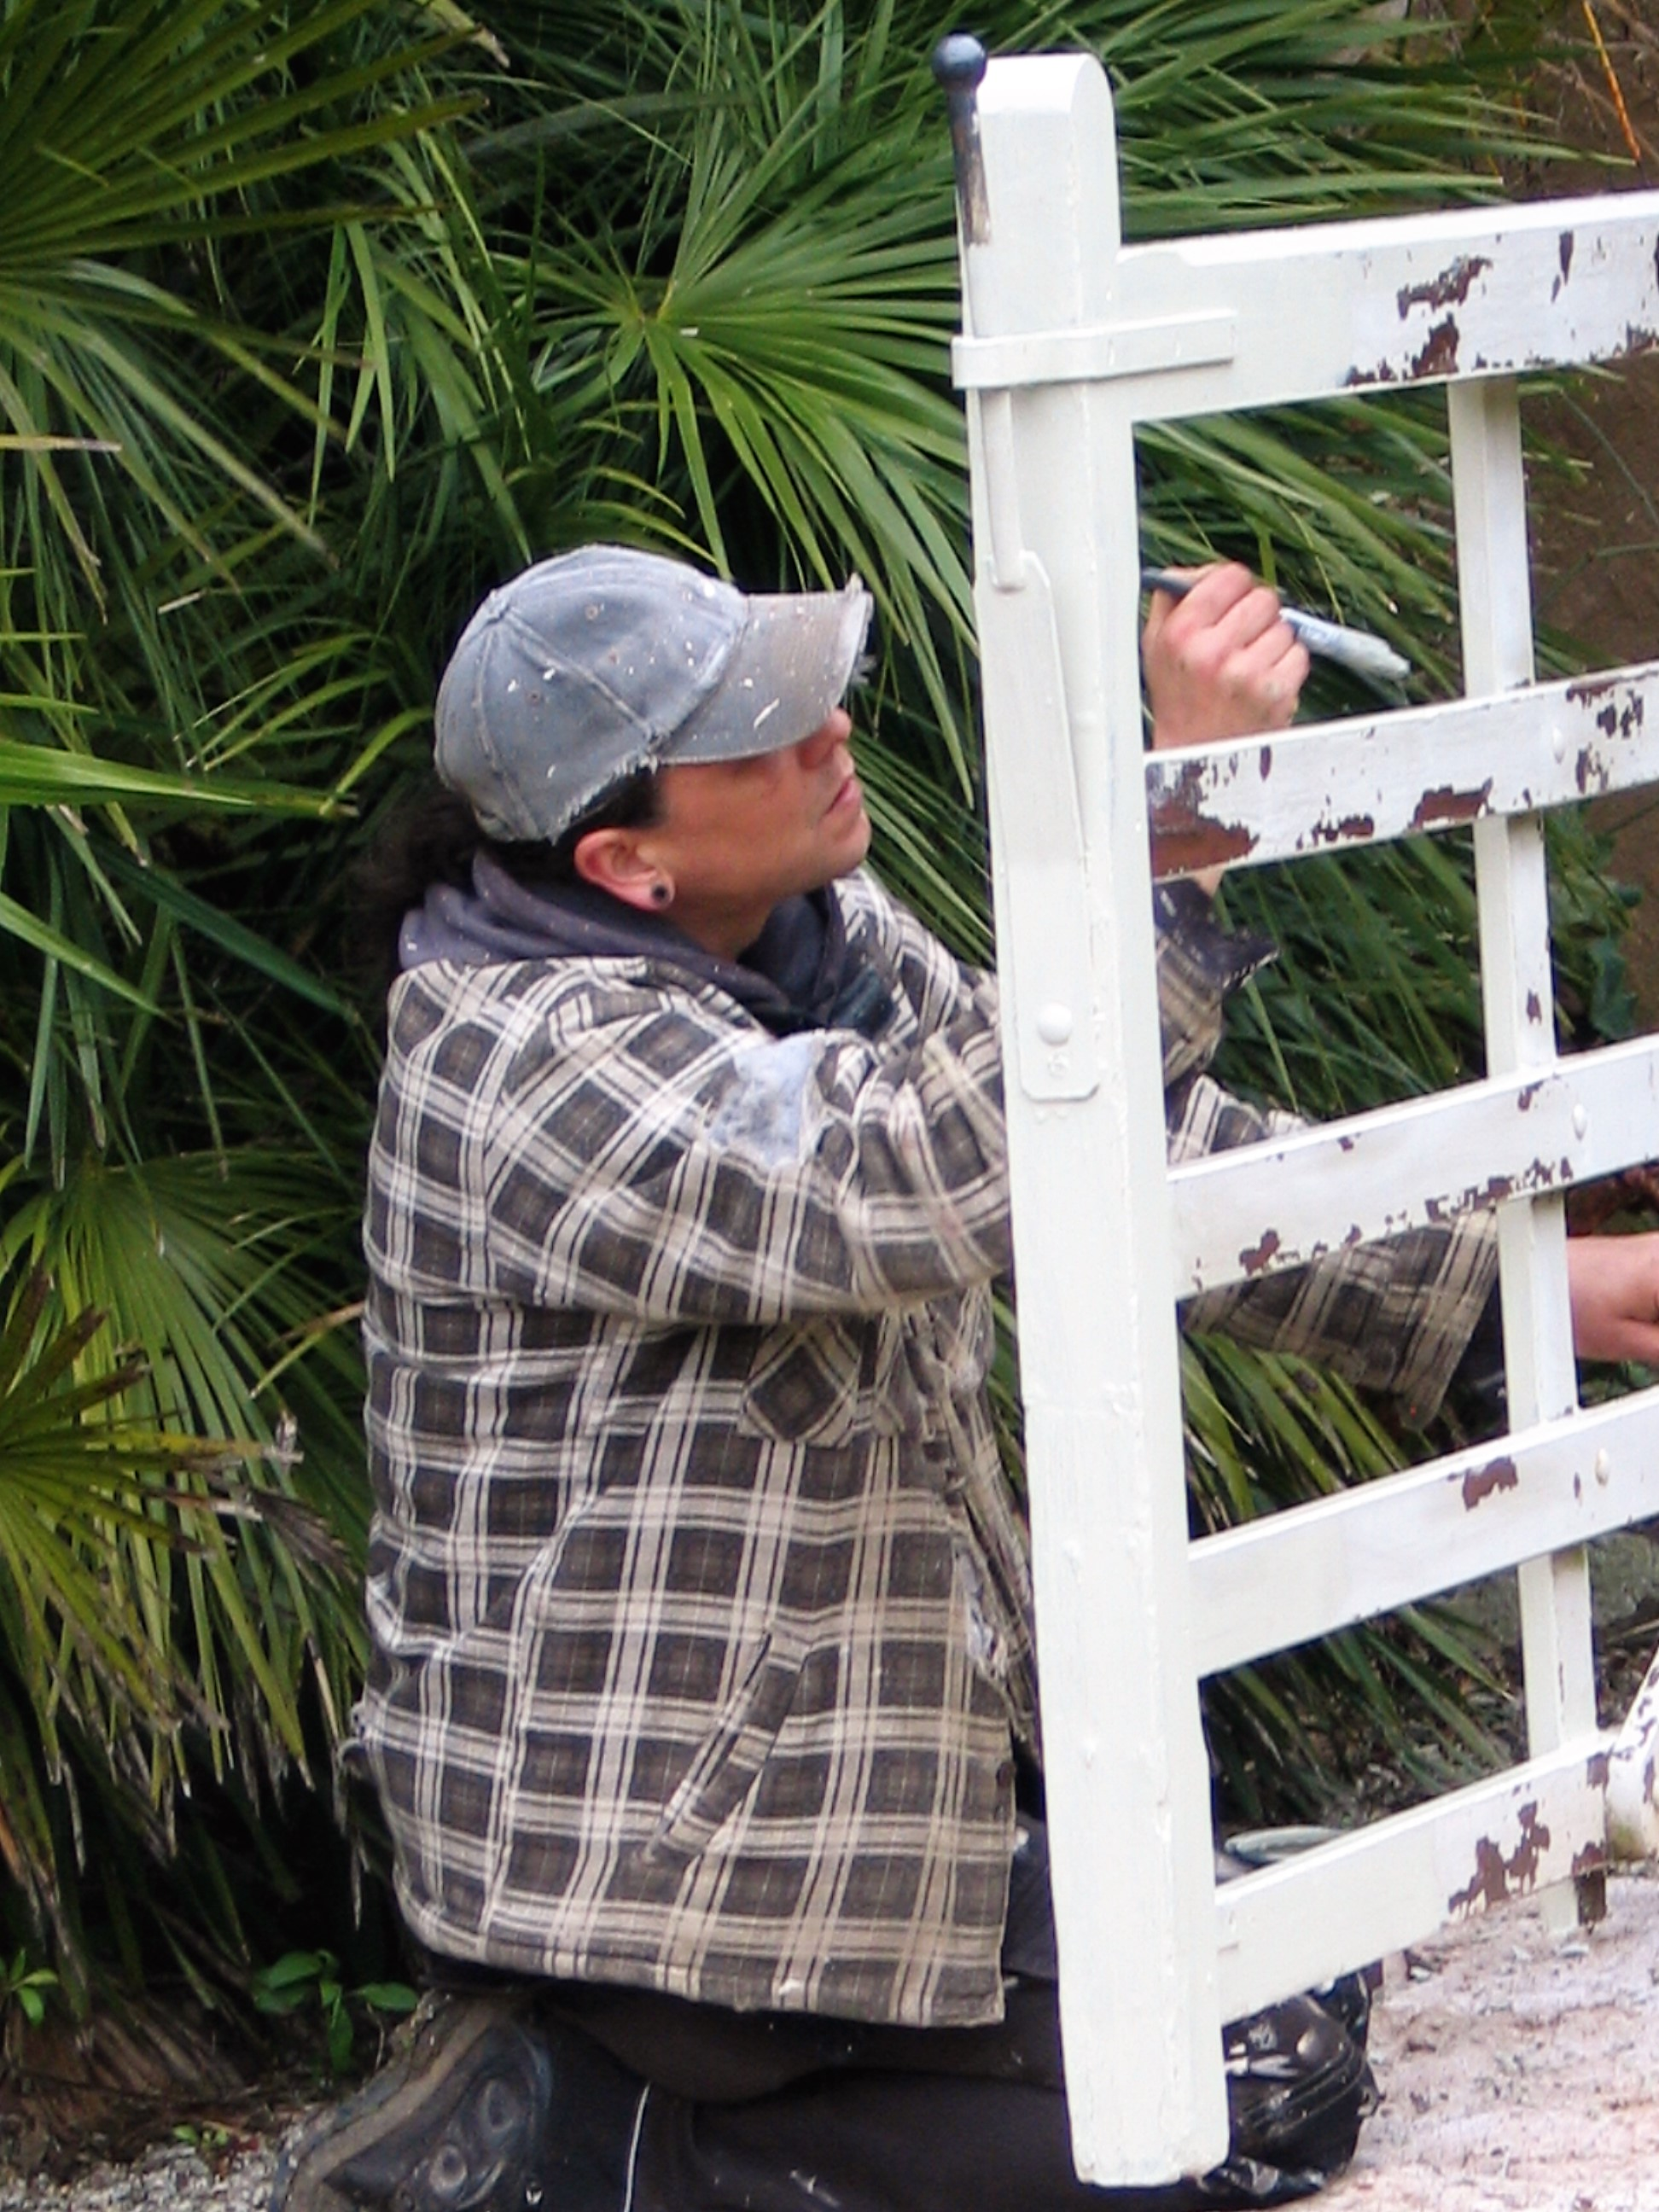 Handy man painting a gate